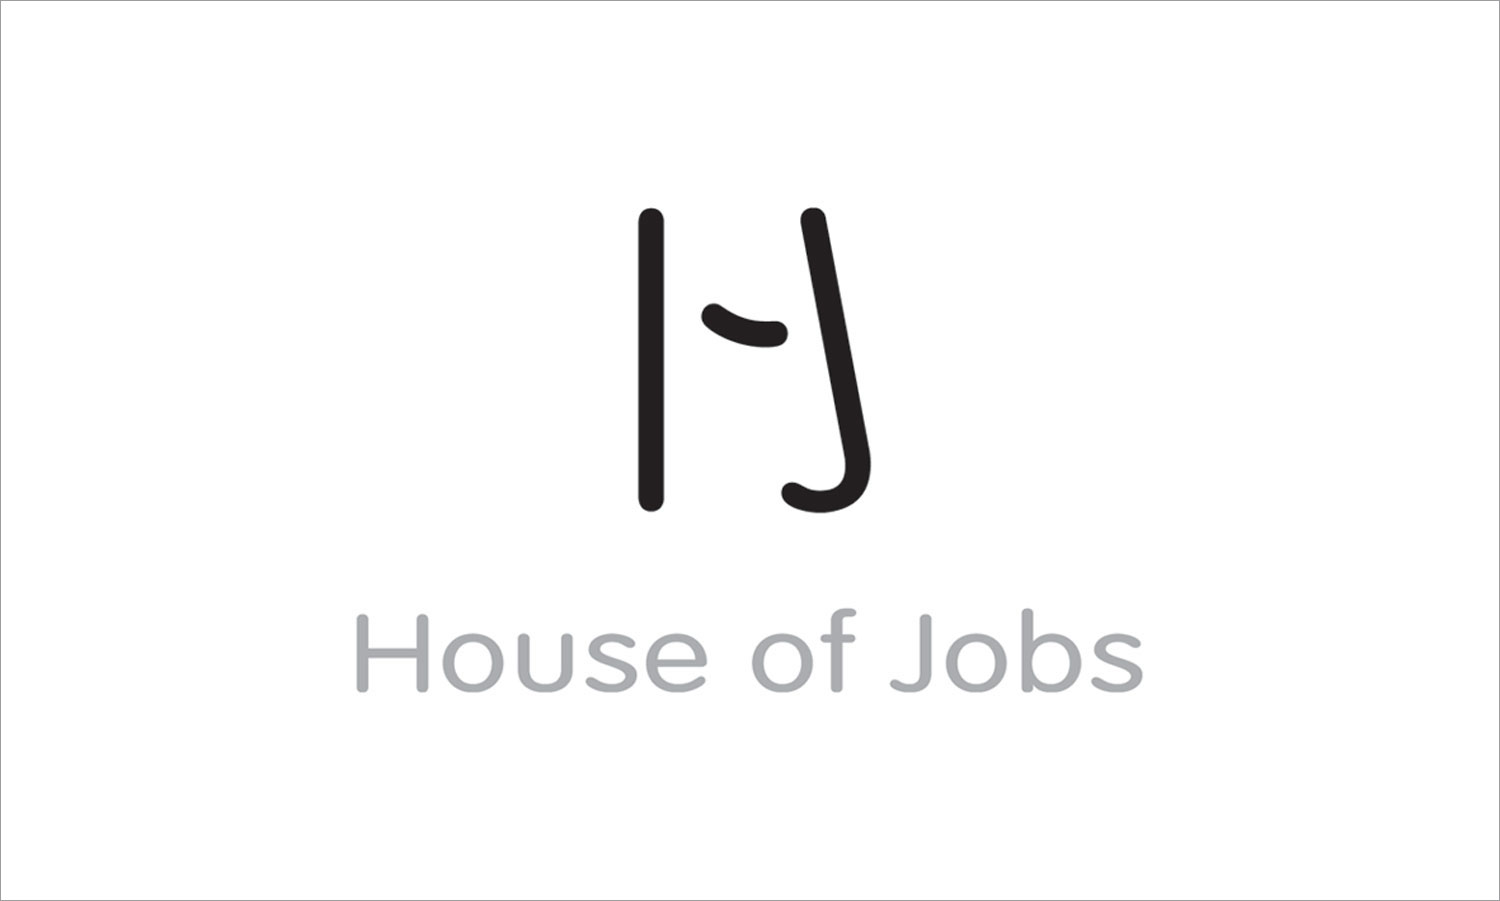 logo_houseofjobs2.jpg